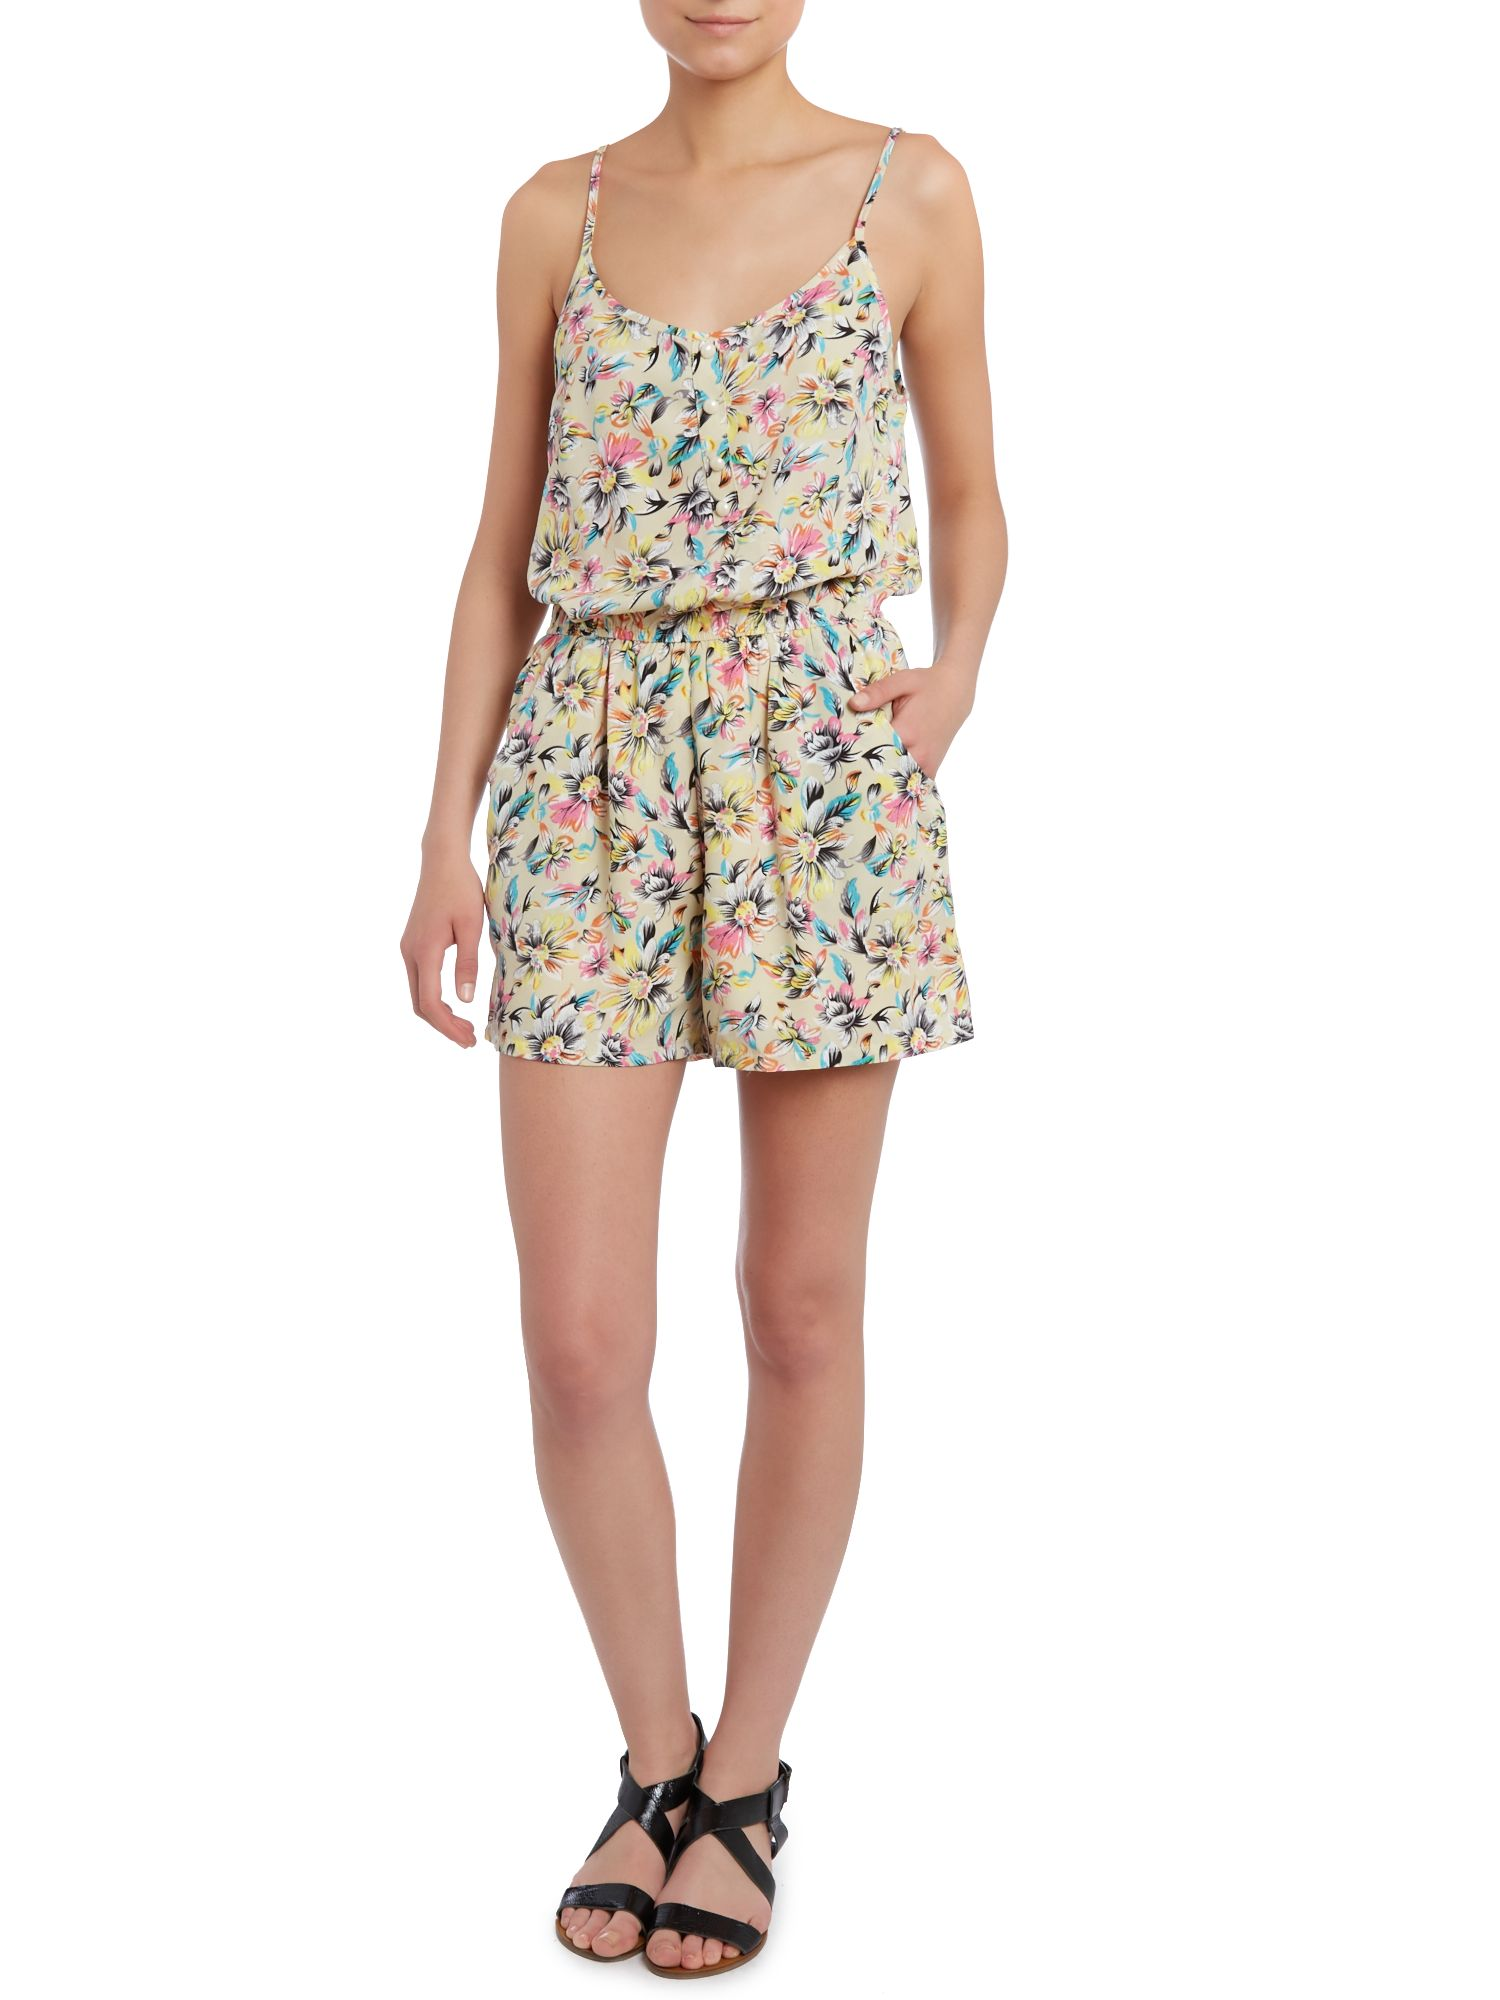 Floral strappy playsuit